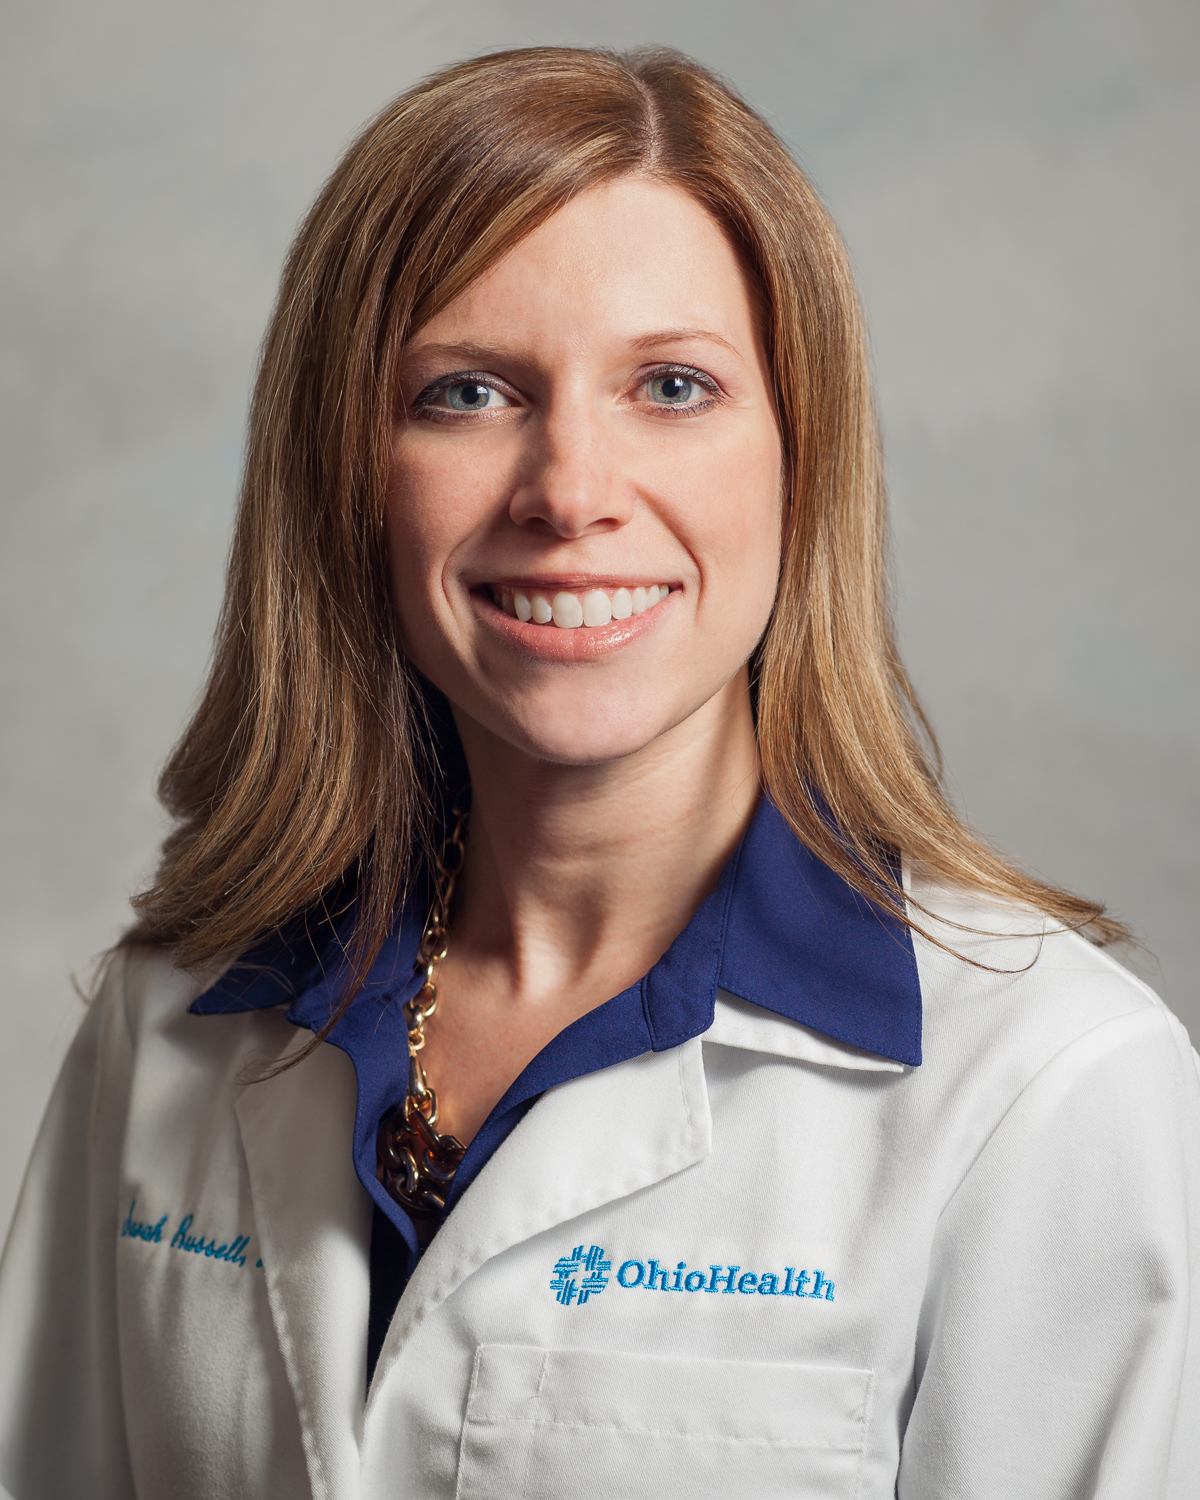 Ohiohealth Welcomes New Women S Health Specialist To Join Buckeye Ob Gyn